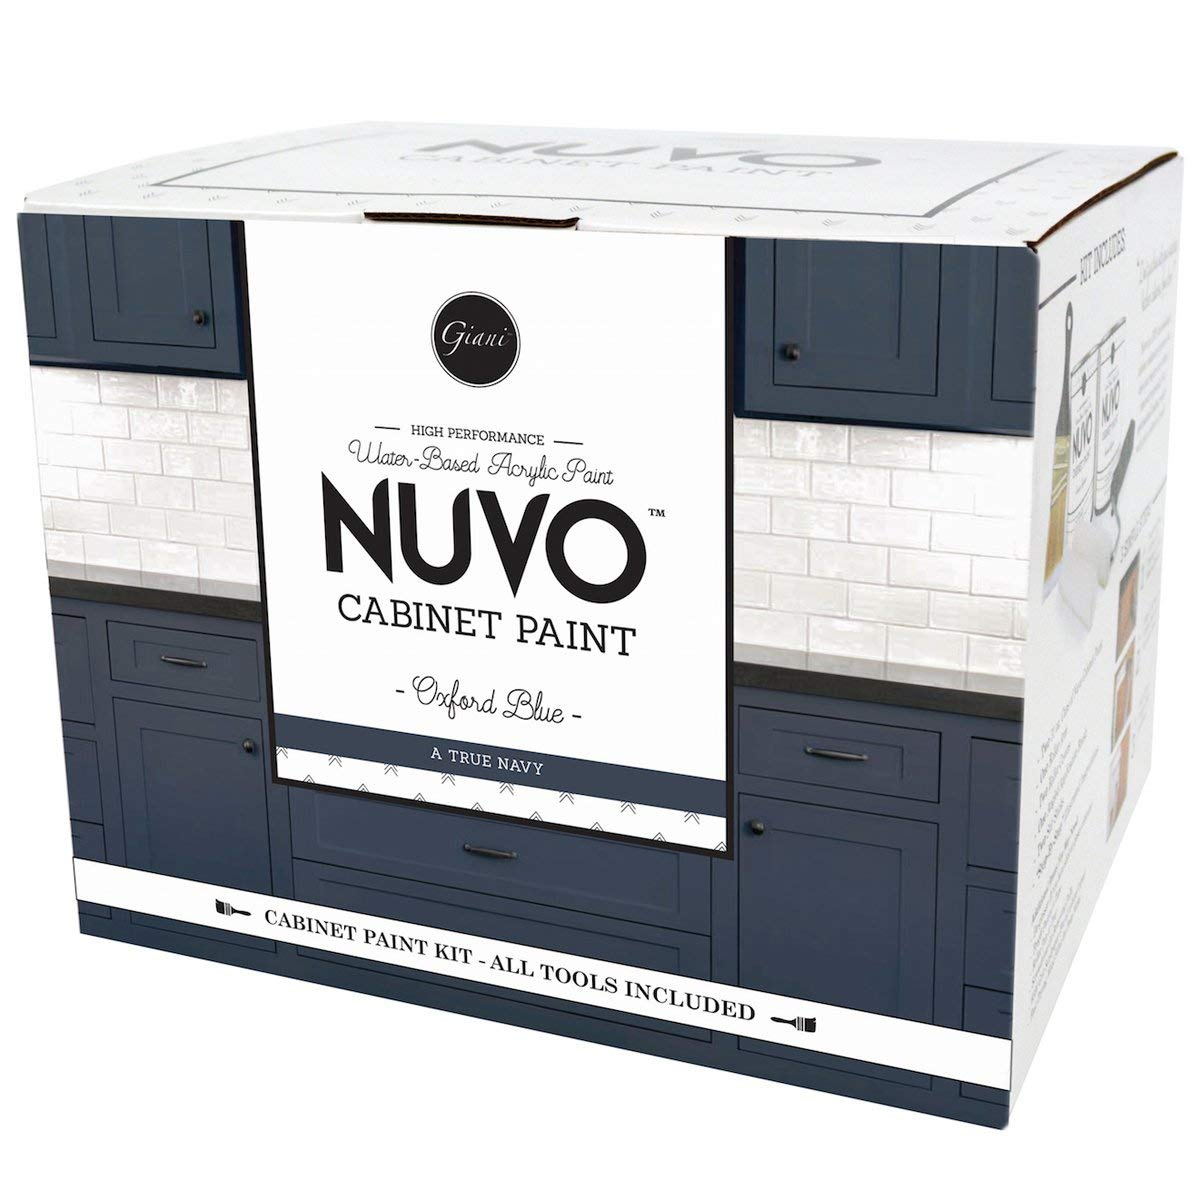 Nuvo Cabinet Paint.jpg